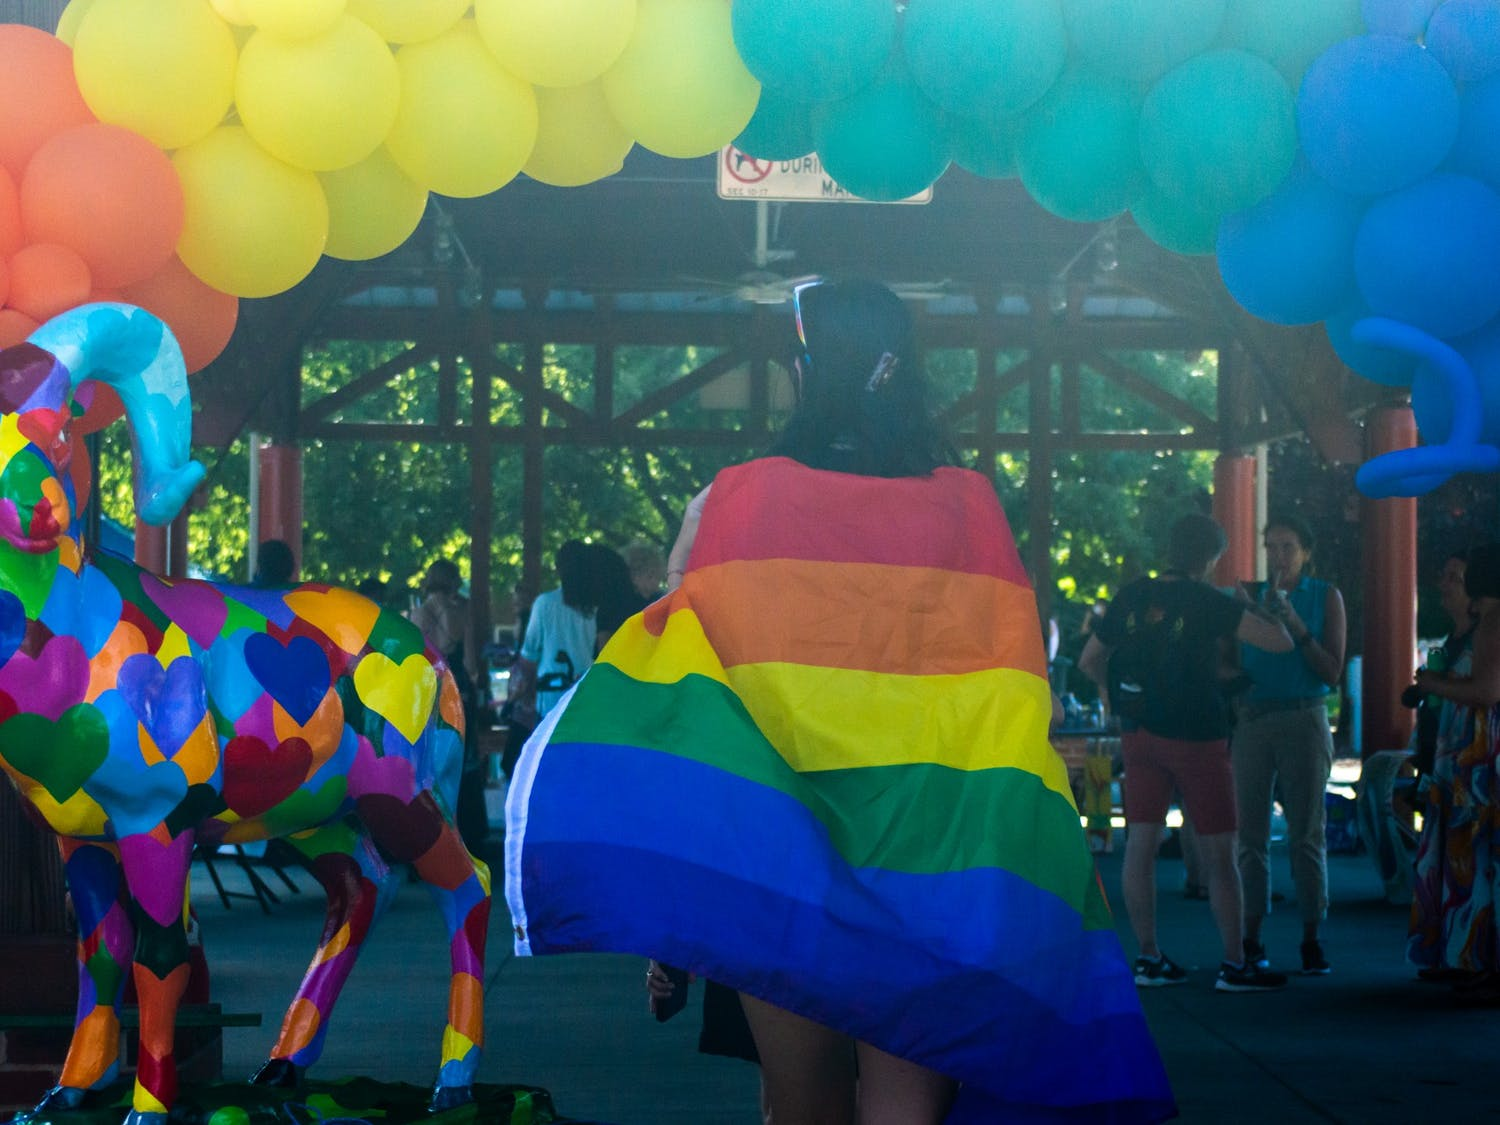 A community member wearing a rainbow flag walks through the rainbow balloon display at the Chapel Hill Carrboro Small Town Pride Food Truck Rodeo and Dance Party in Carrboro on Thursday June 24, 2021.